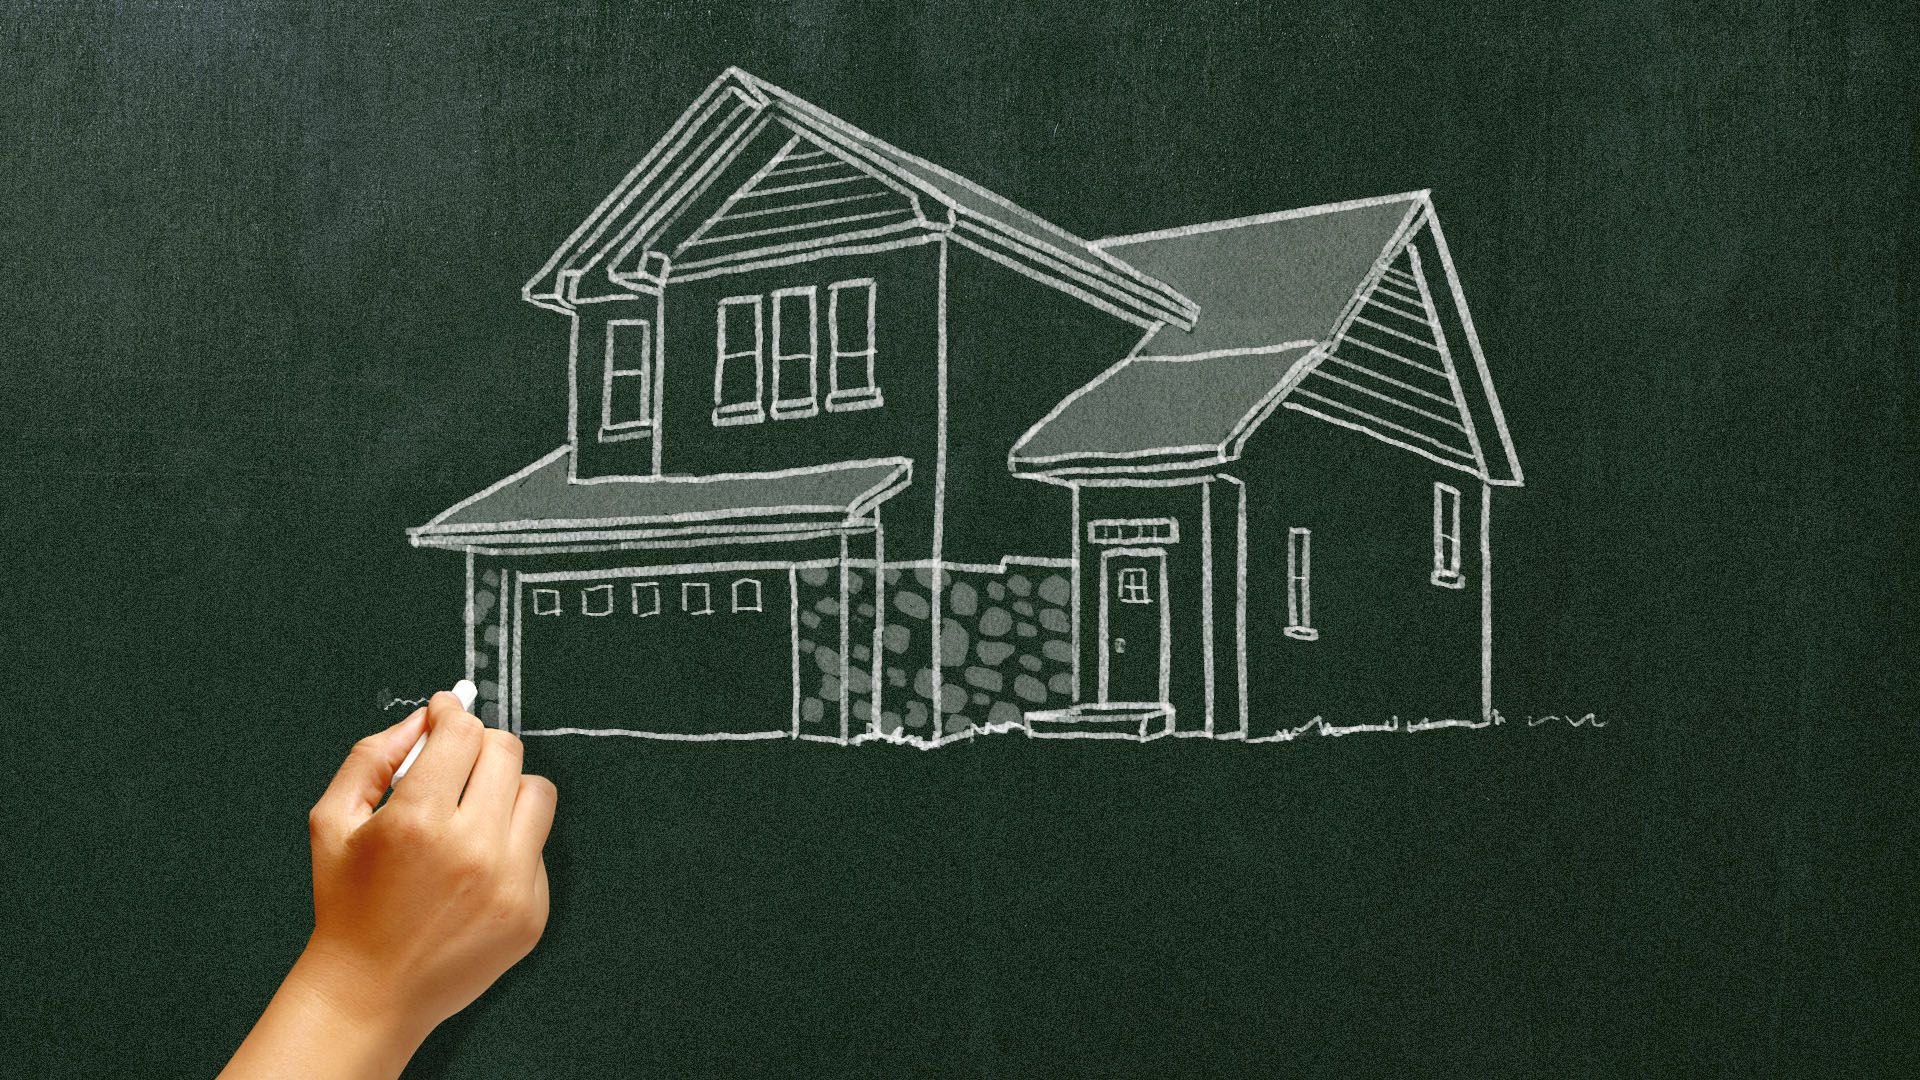 Illustration of a teacher's hand drawing a house on a blackboard